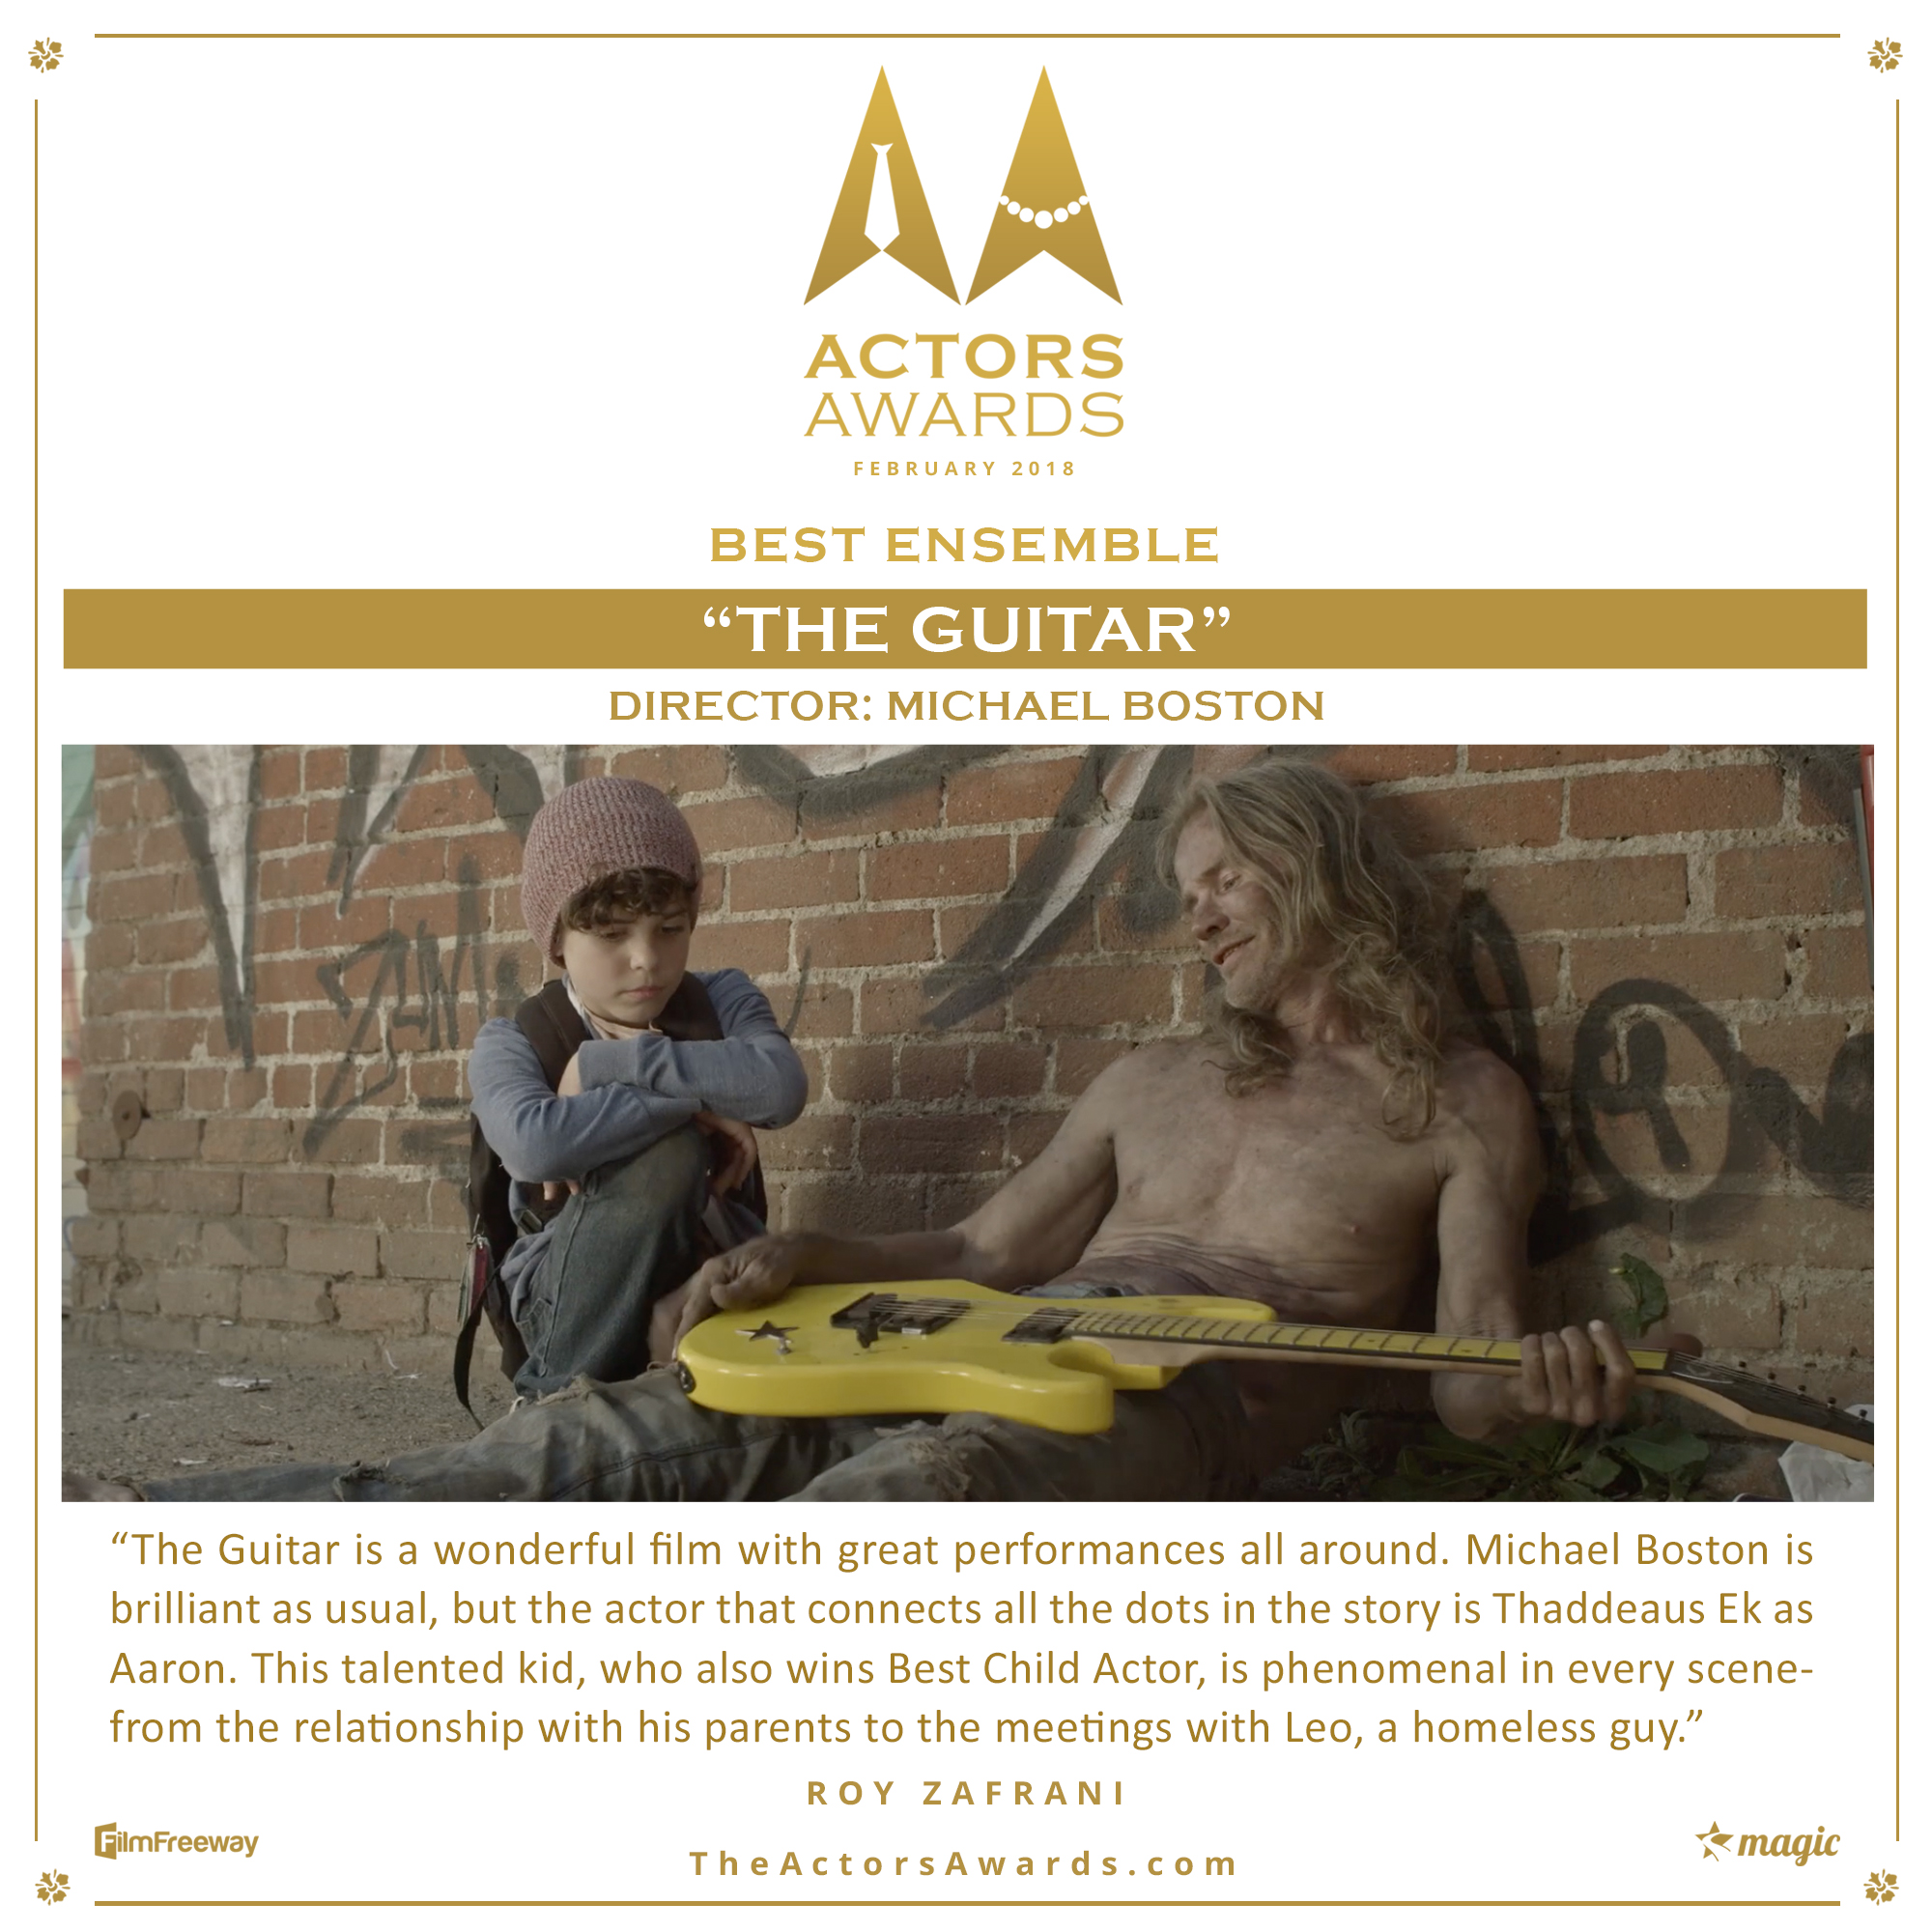 actorsawards | FEBRUARY 2018